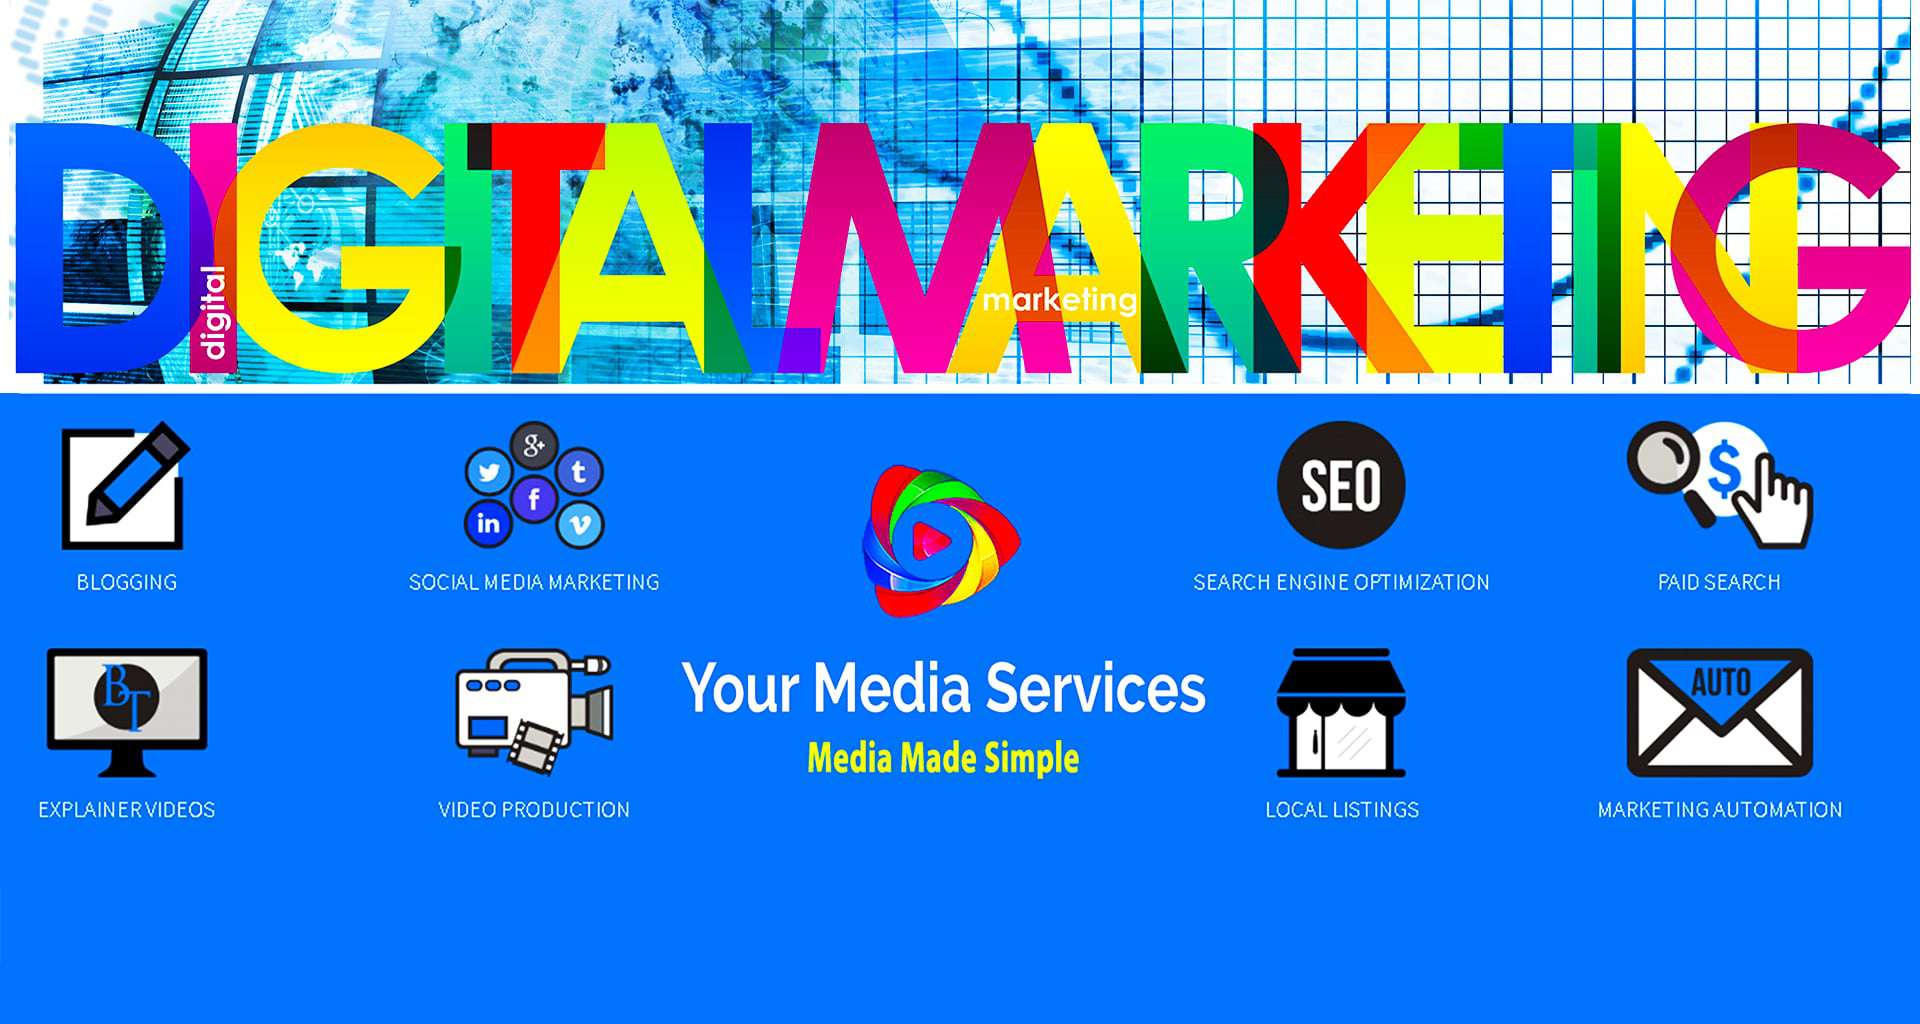 St Pete Full-Service Digital Online Marketing Agency, Your Media is showcasing offerings from blogging to web design